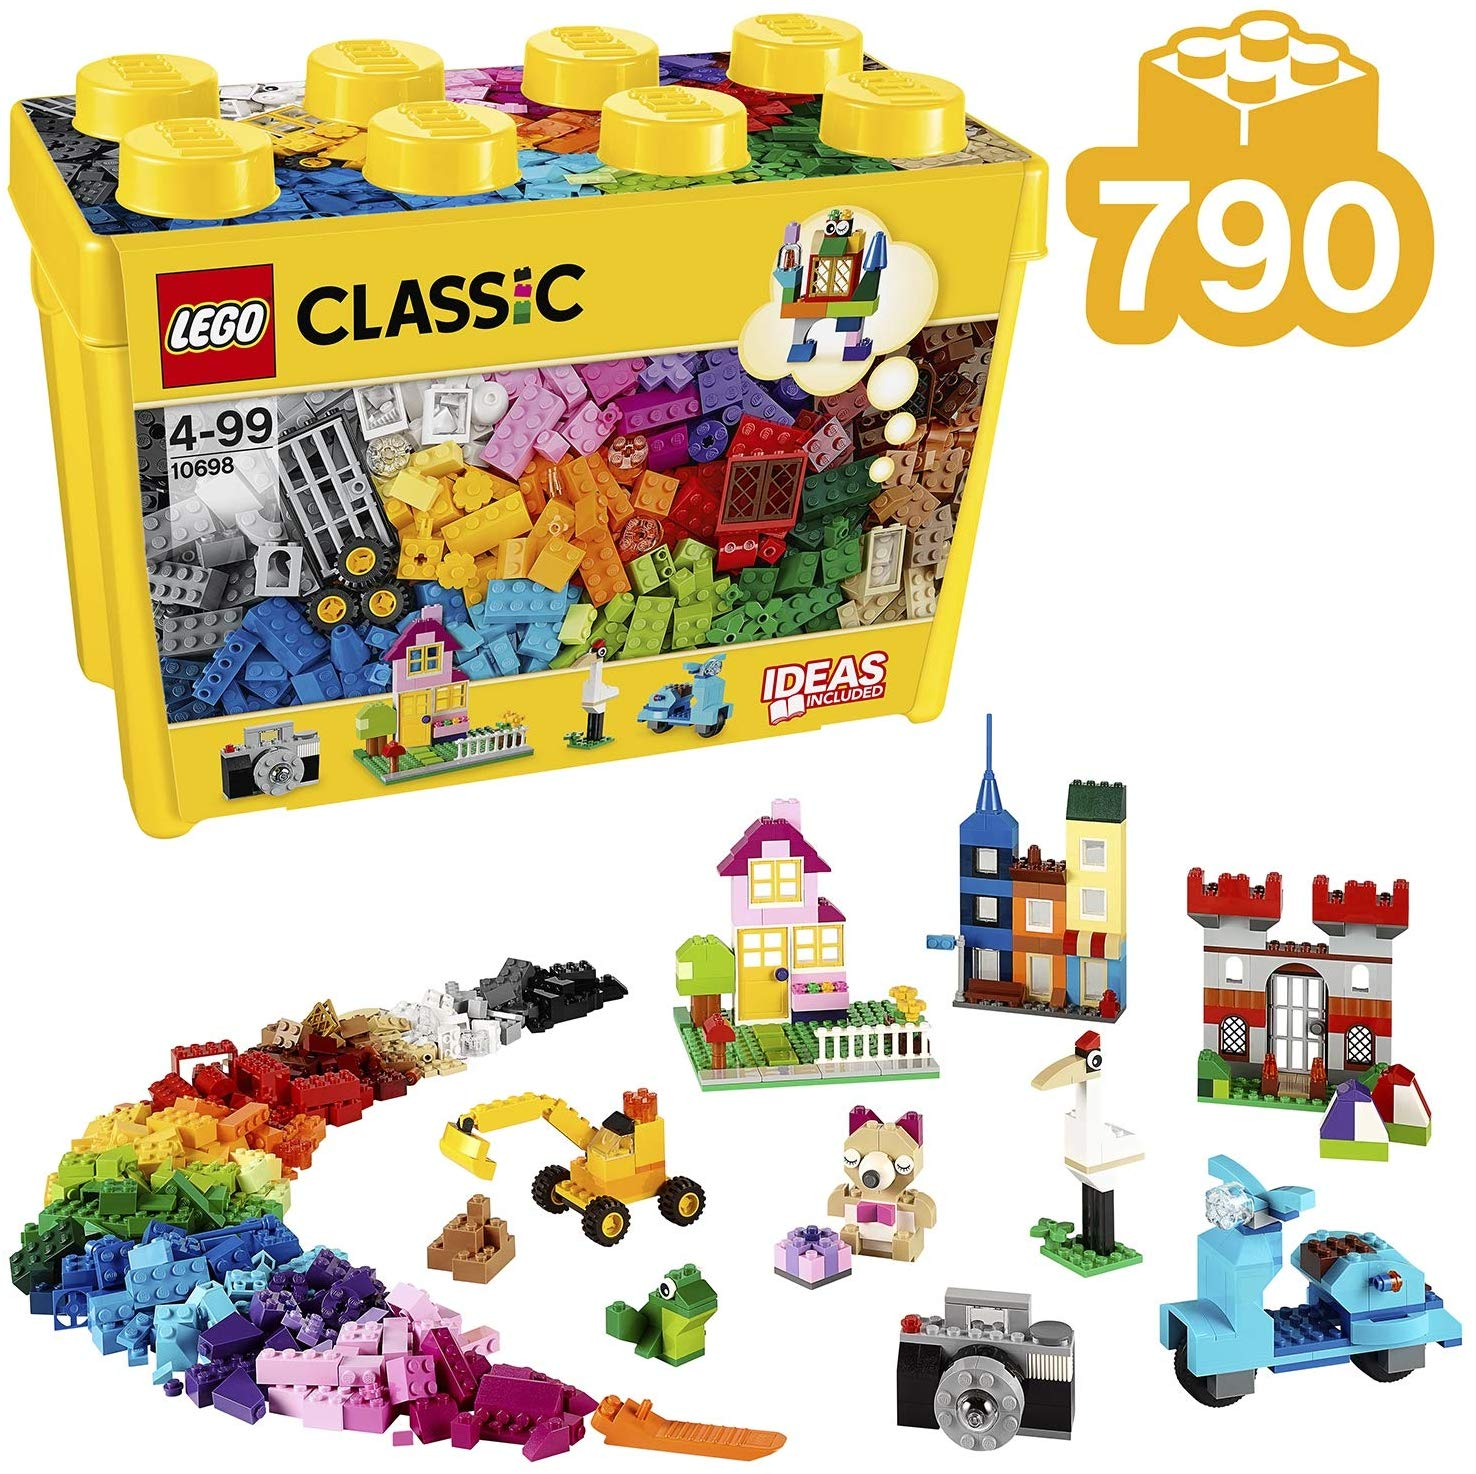 LEGO Classic Large Creative Brick Box Construction Set